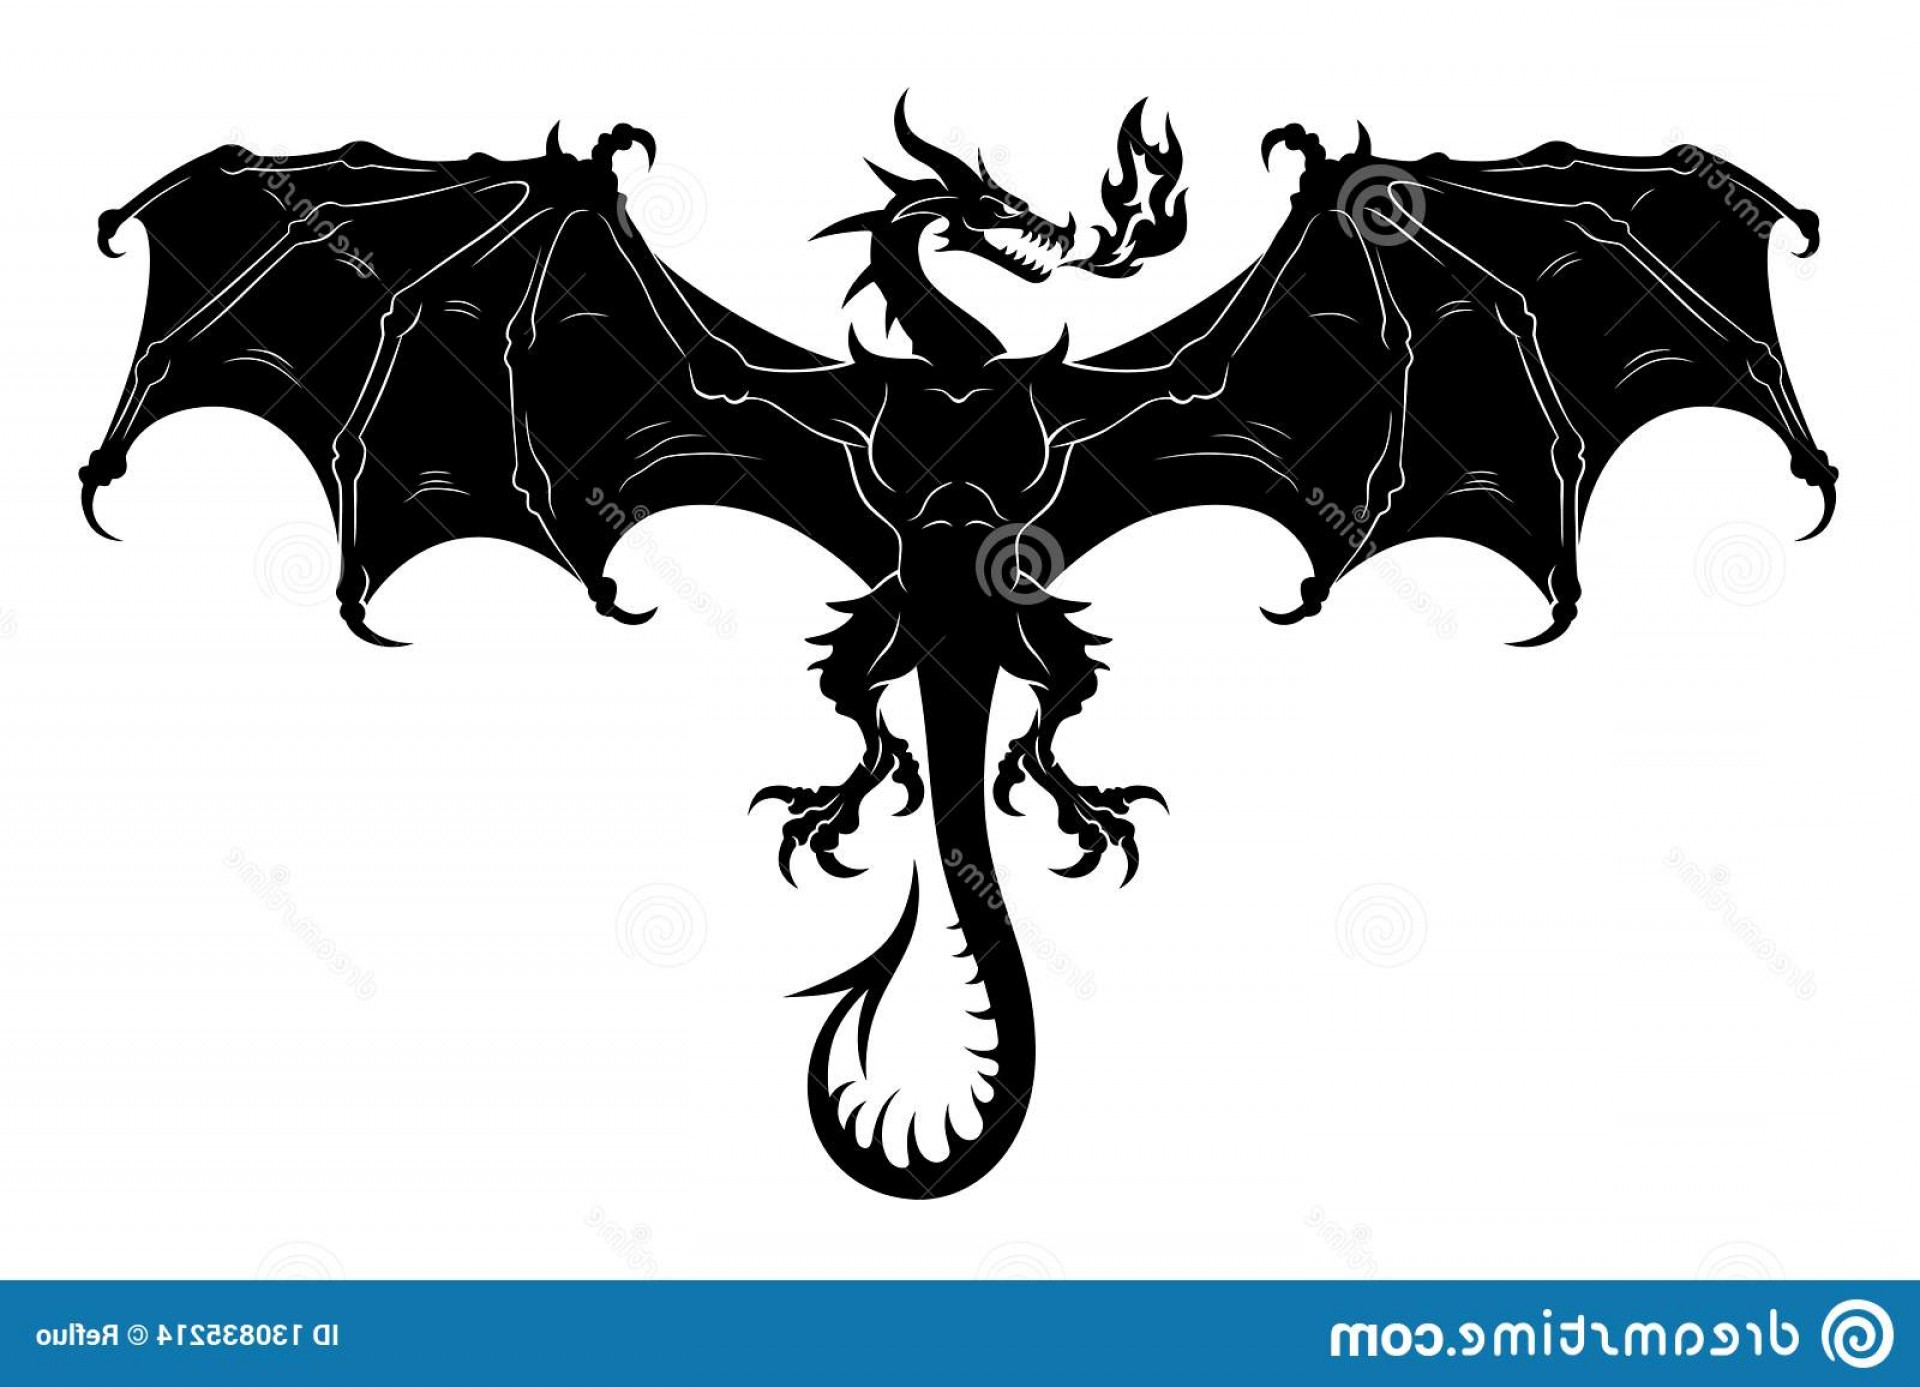 Baby Dragon Silhouette Vector: Flying European Dragon Fire Monochrome Vector Illustration Flying Dragon Silhouette Image